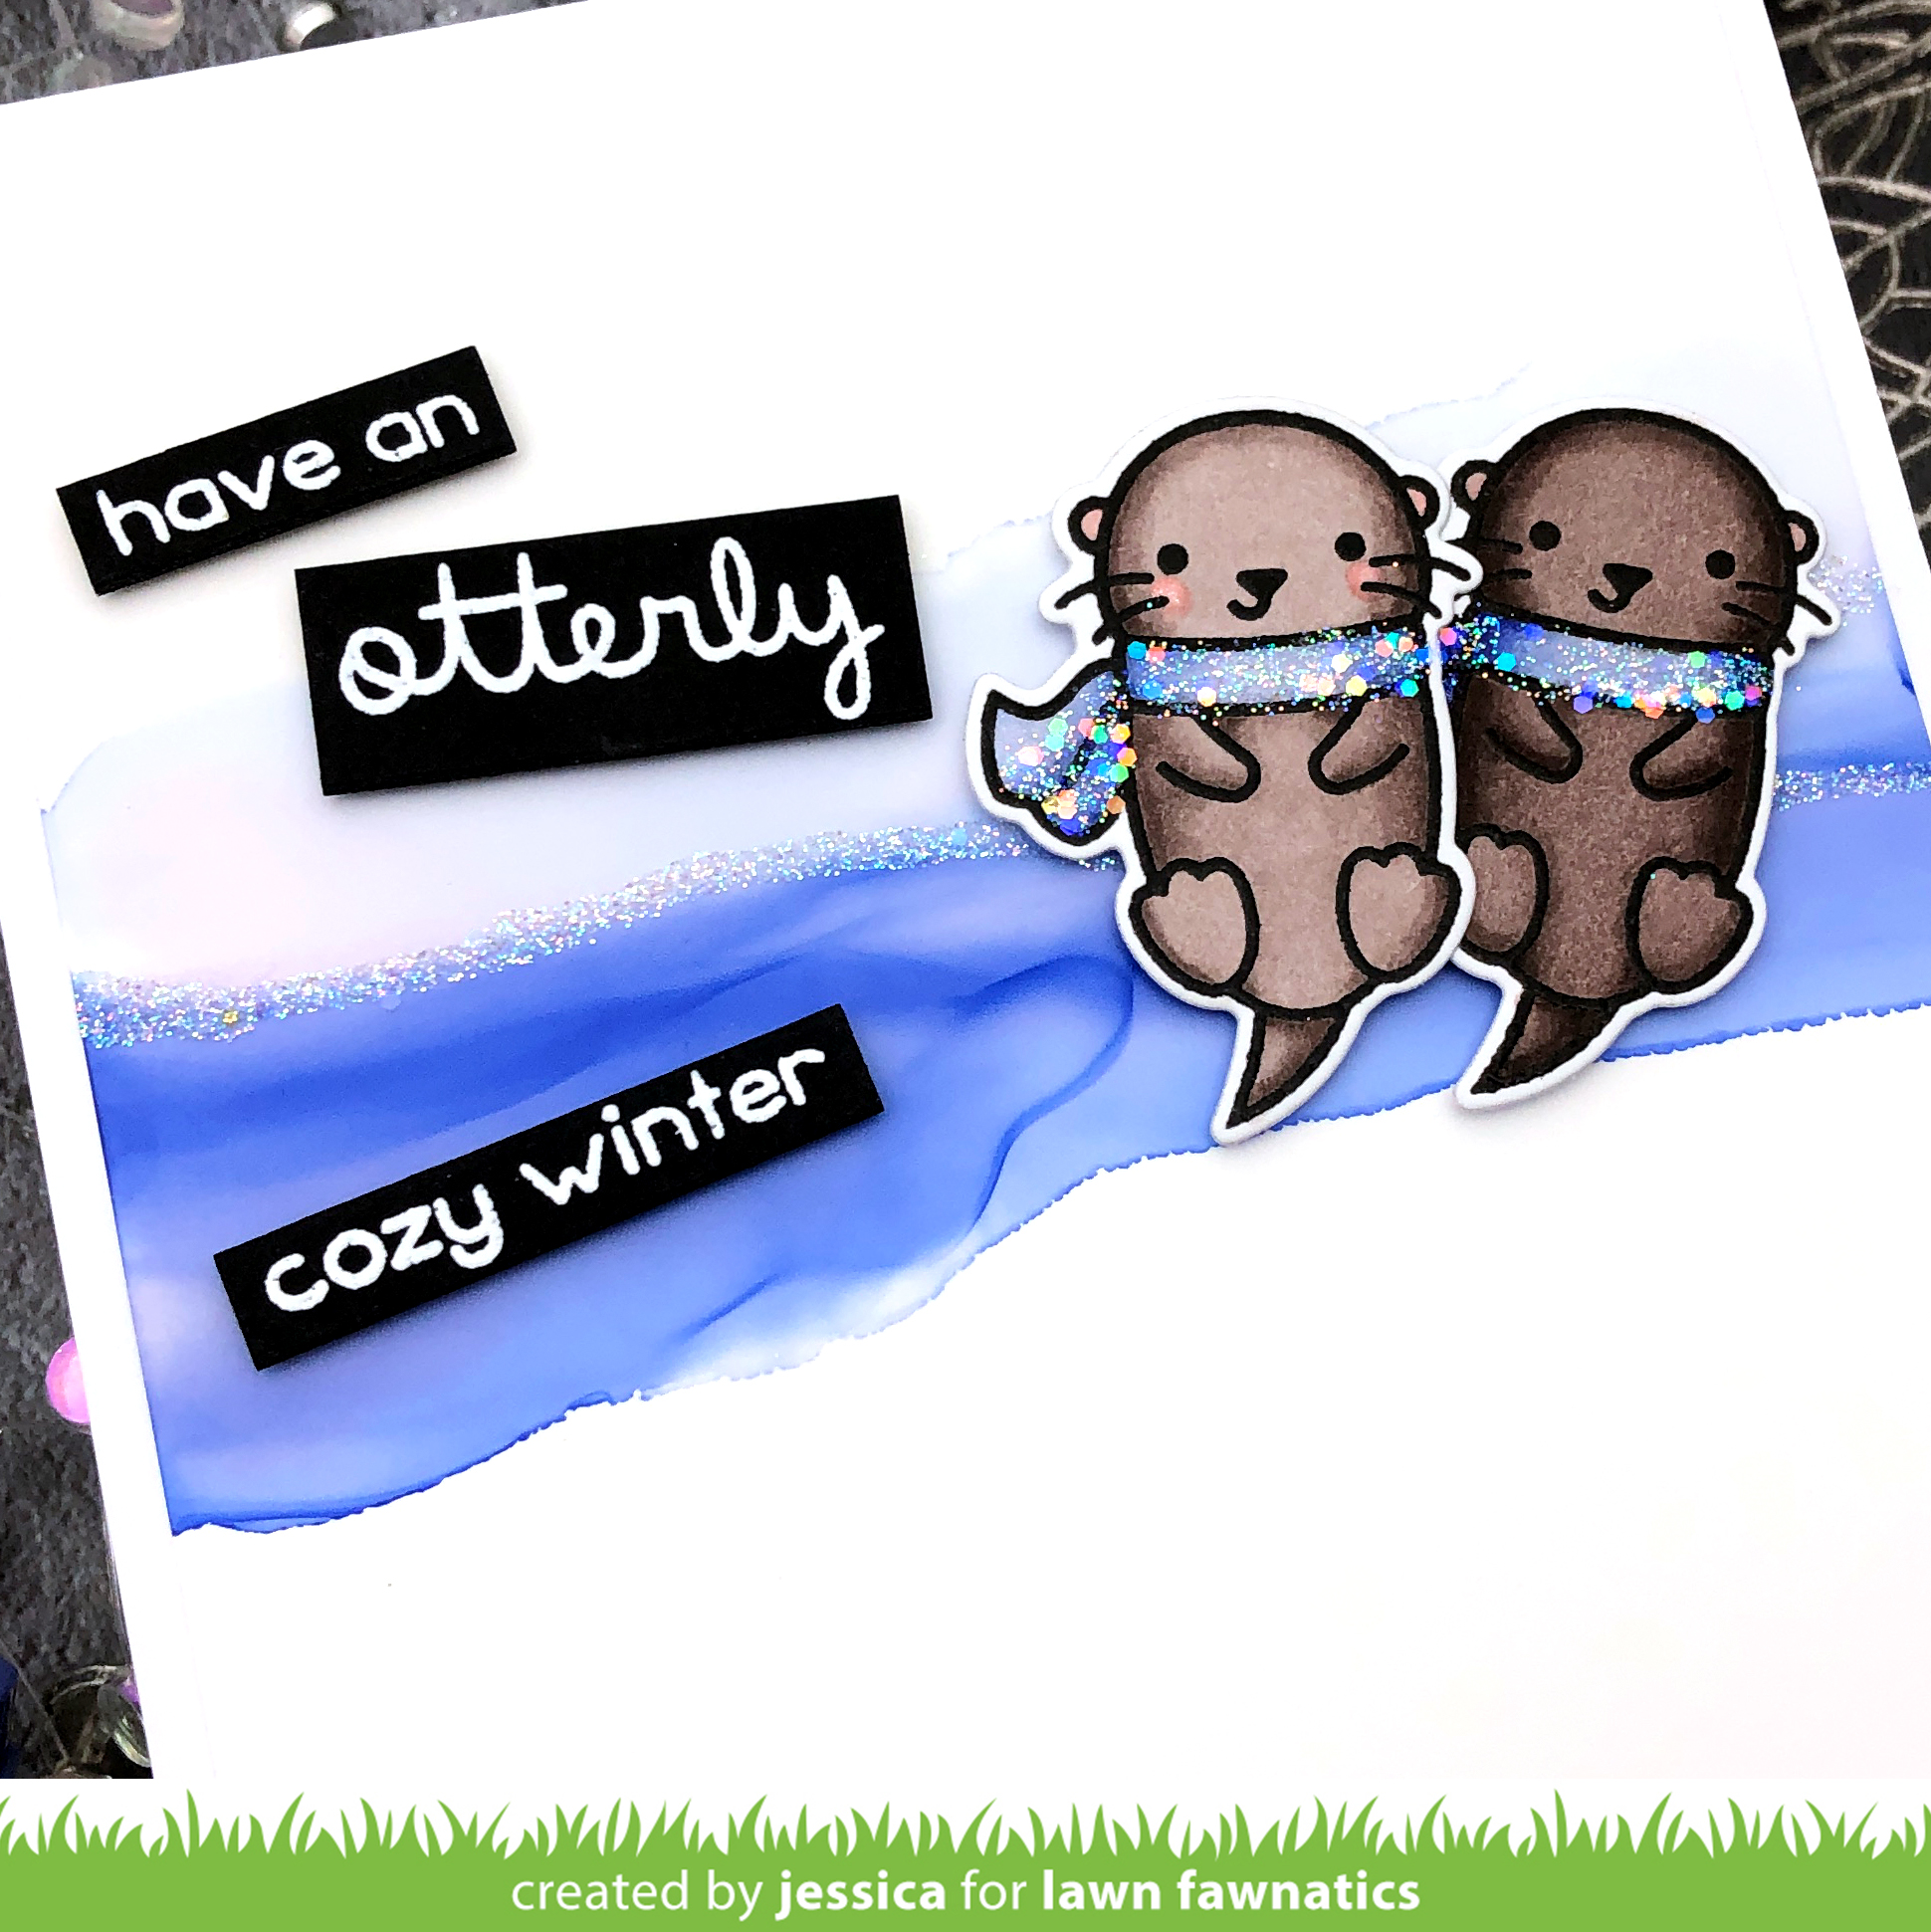 Otterly Cozy Winter by Jessica Frost-Ballas for Lawn Fawnatics